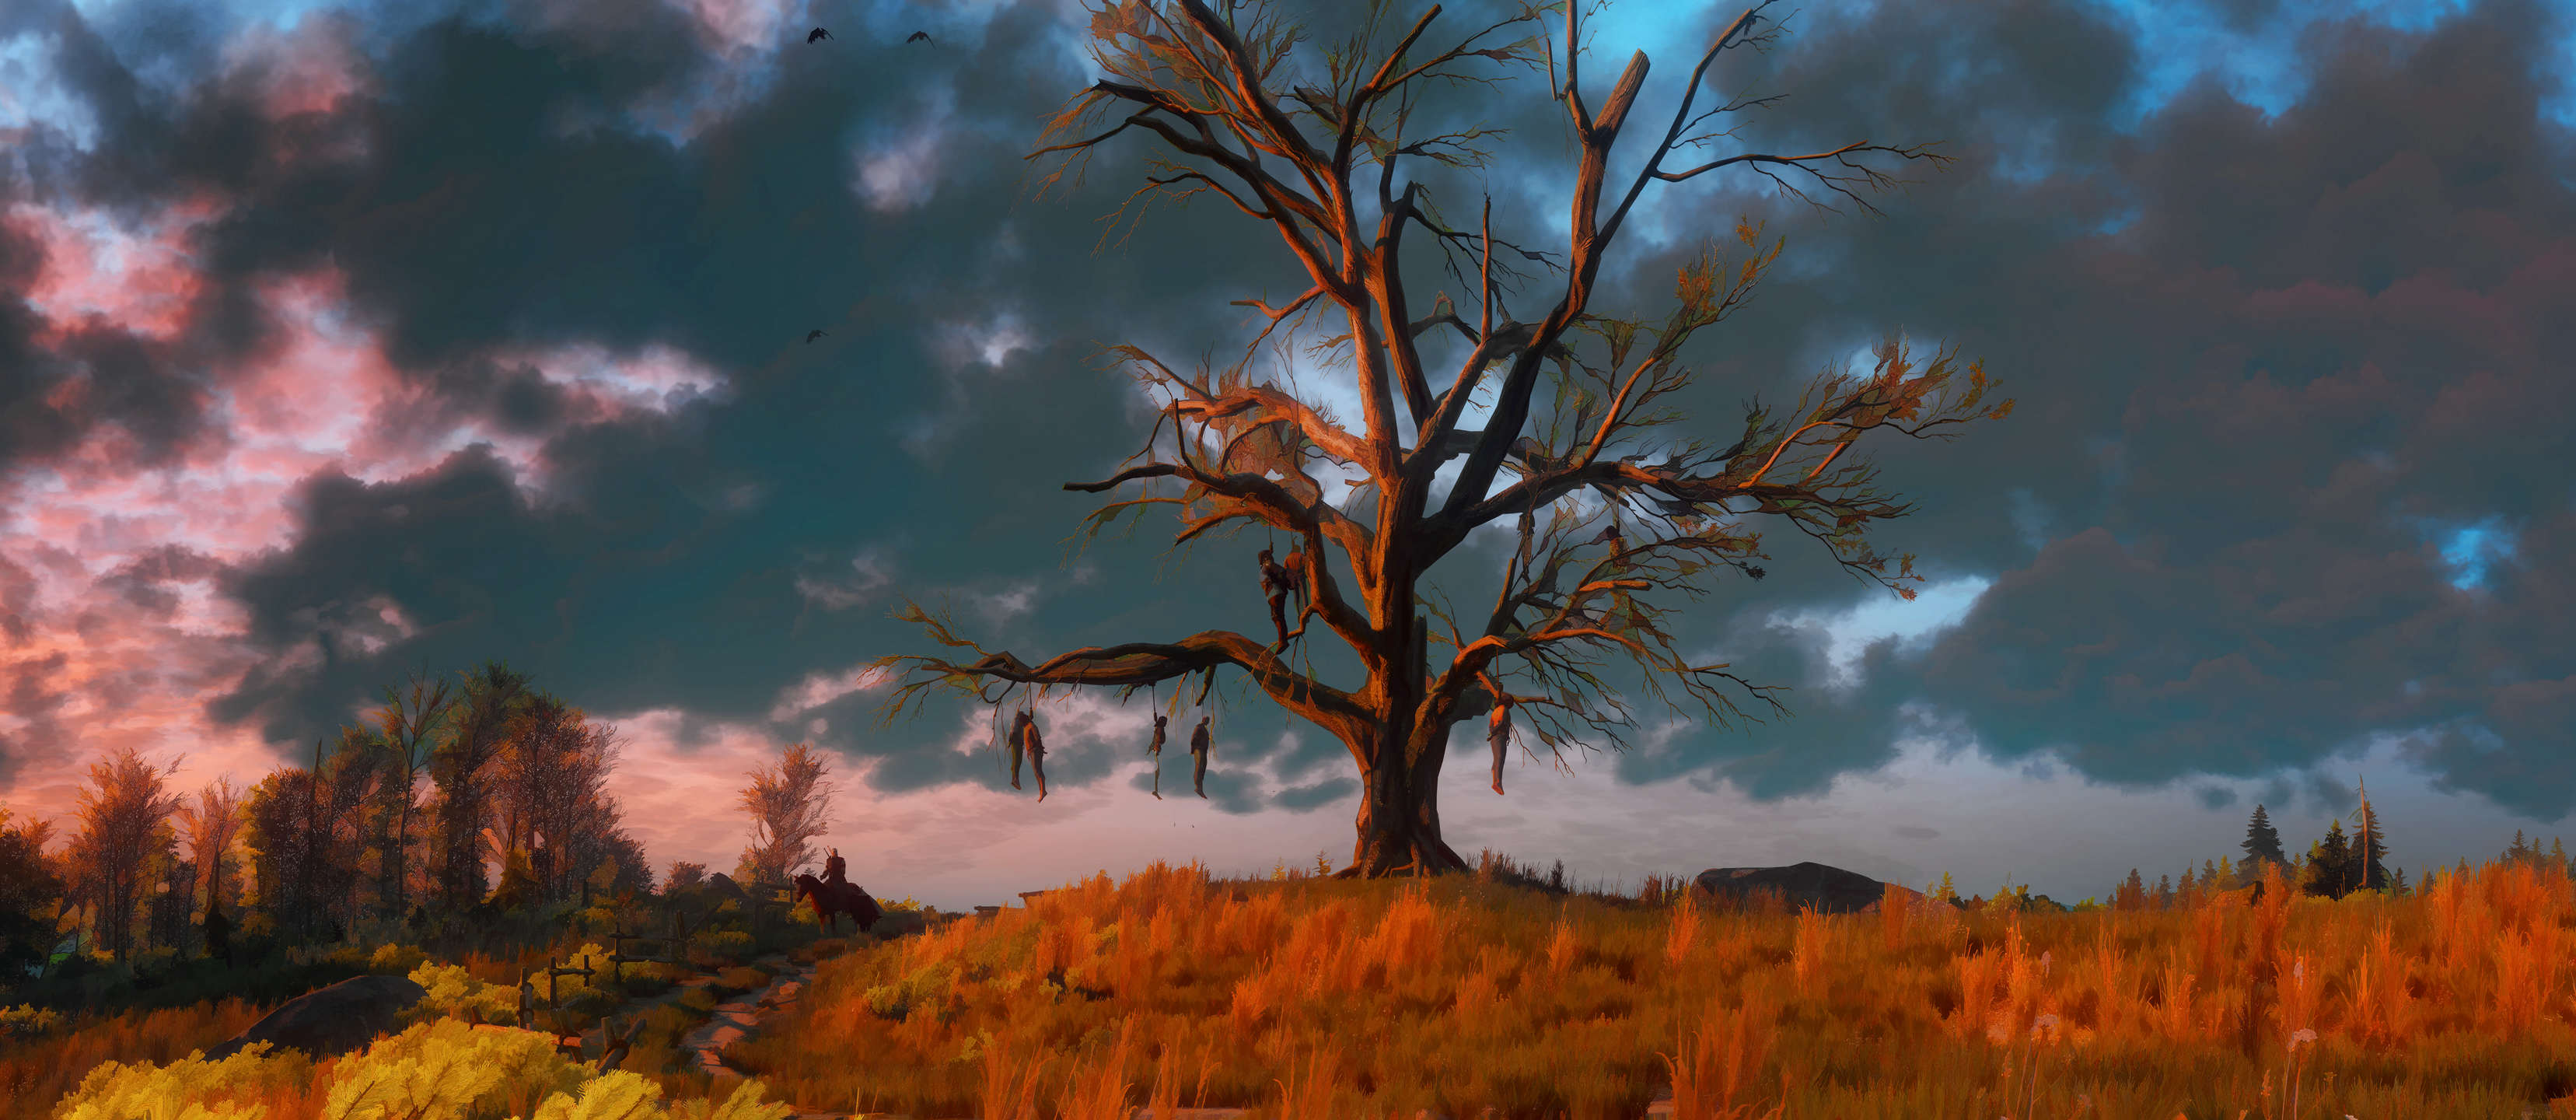 LDGL1uY 1 This Guy Turned His Witcher 3 Screenshots Into Works Of Art